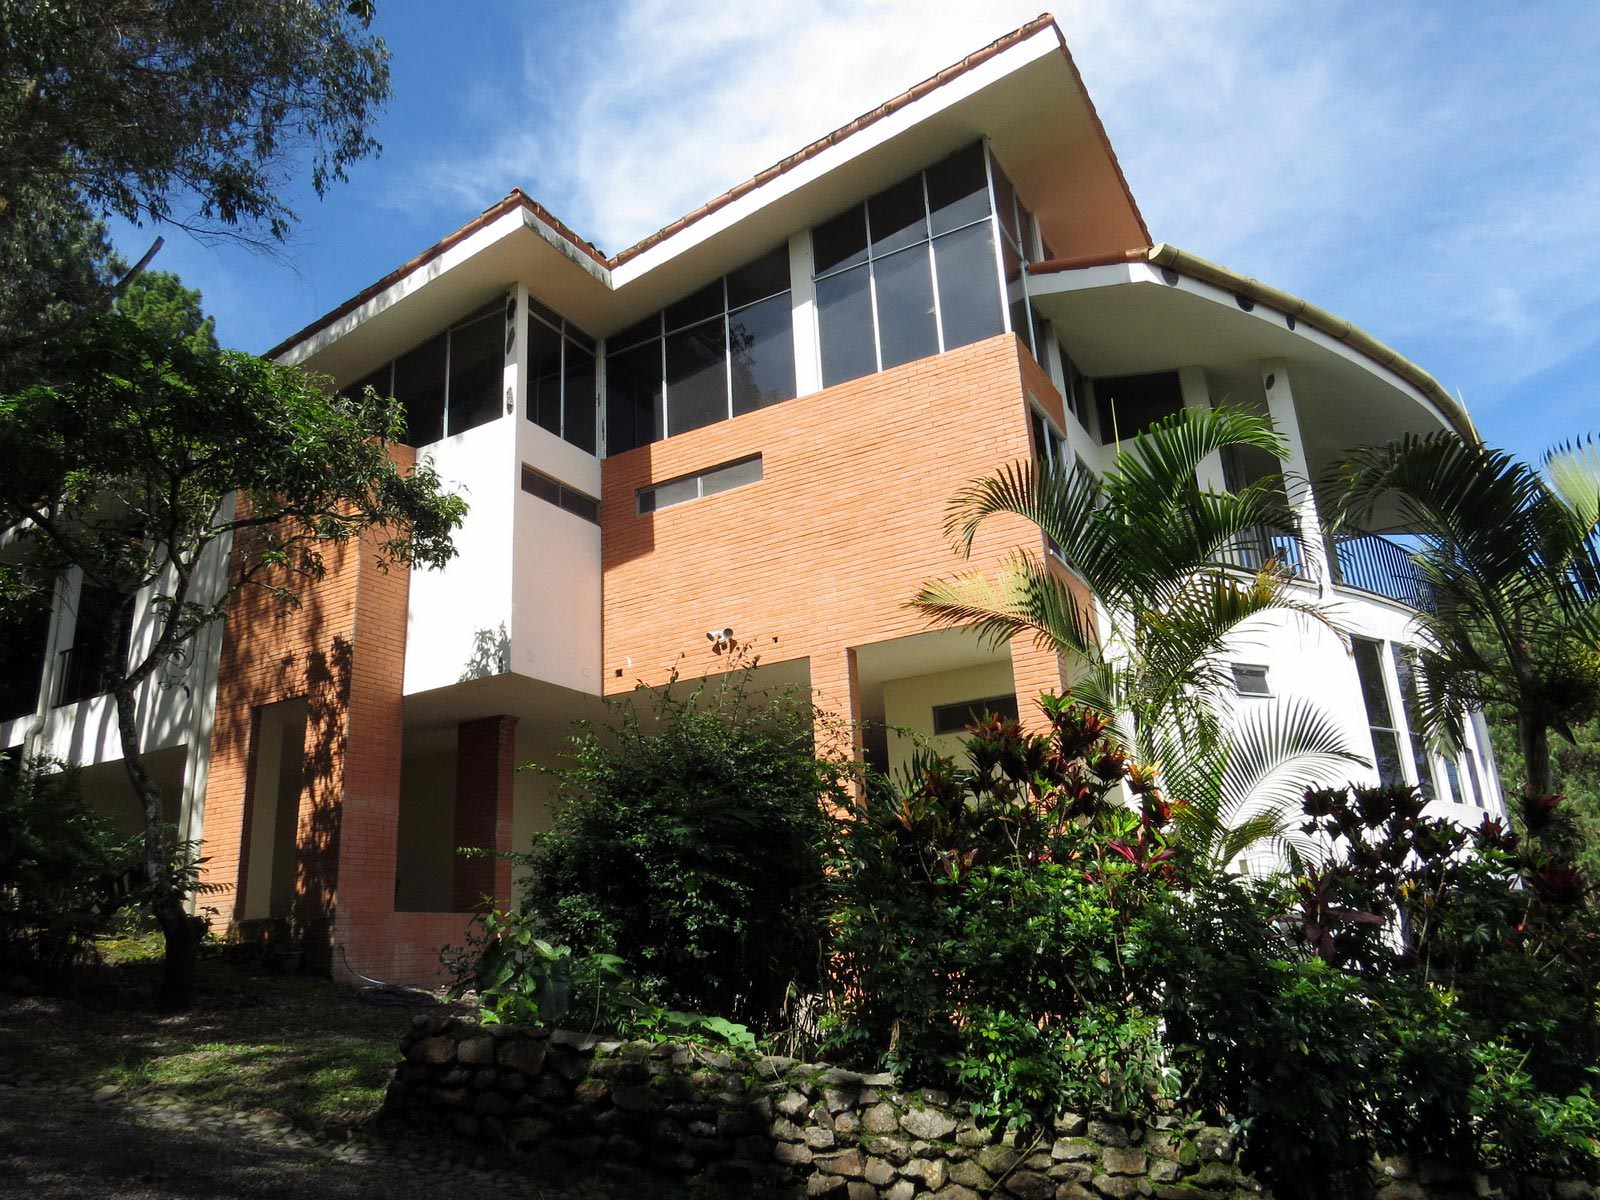 ... Beautiful Modern Luxury 3 Story Mountain House For Sale In Santa Ana  Surrounded By Nature